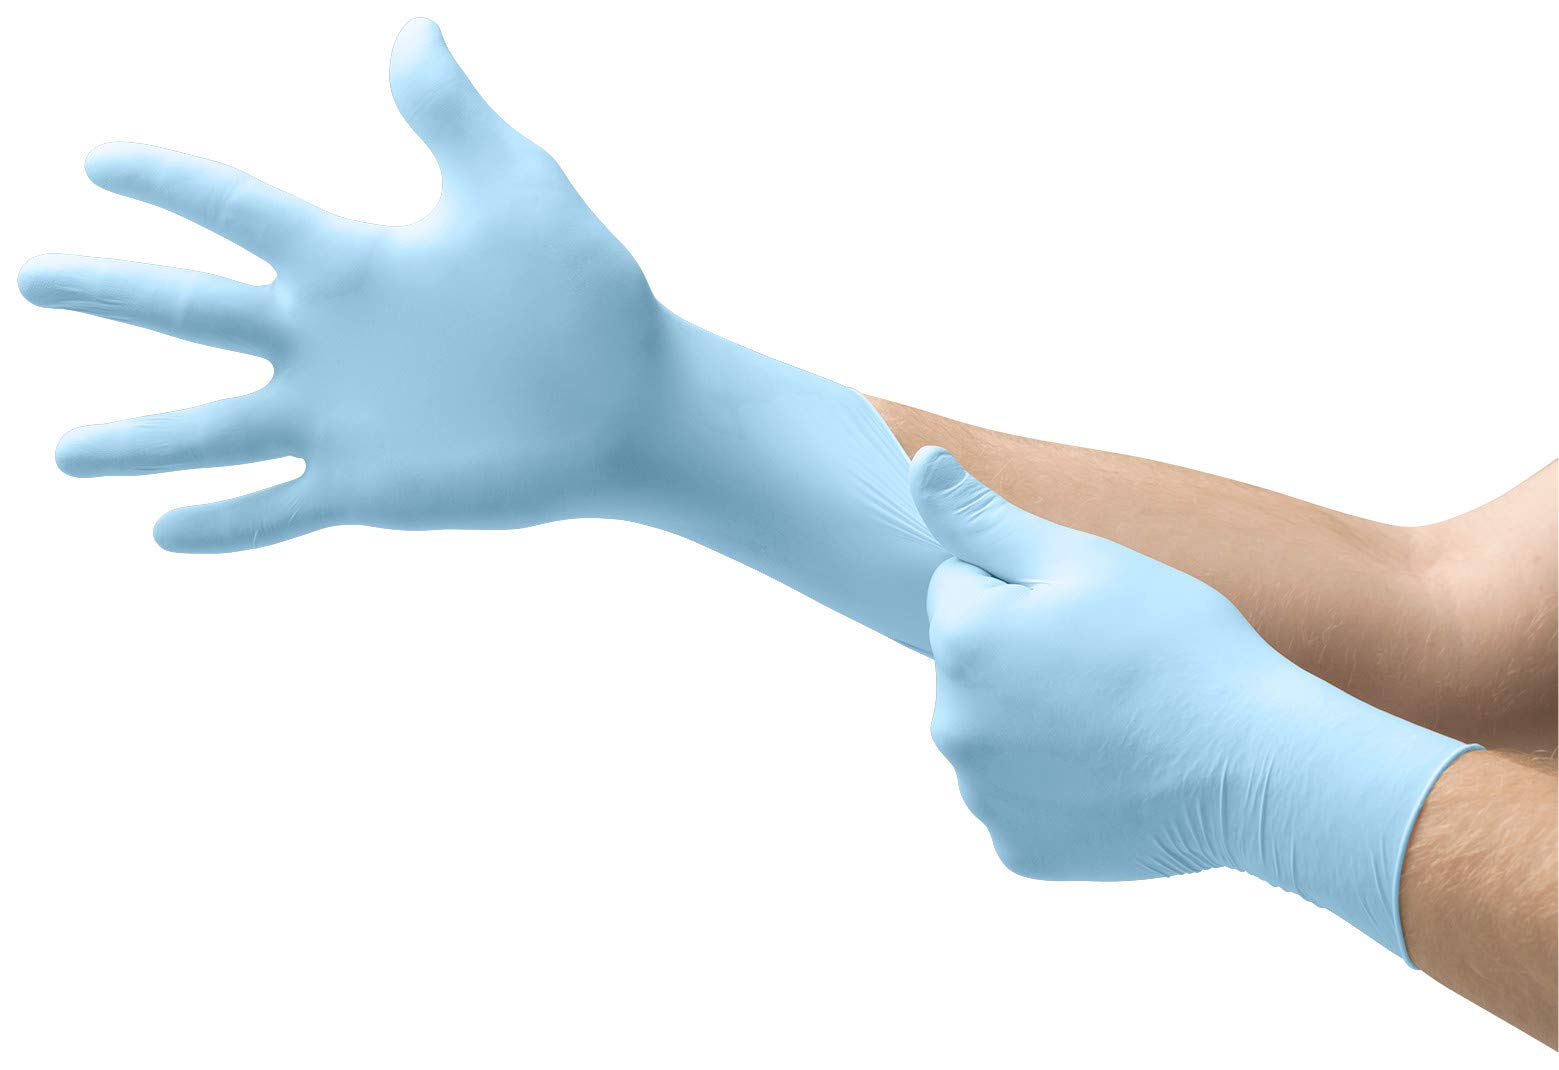 Microflex XCEED-XC310 Disposable Nitrile Gloves, Latex-Free, Powder-Free Glove for Cleaning, Mechanics, Automotive, Industrial, Food Handling or Medical Applications, Blue, Size Small, Box of 250 Uni